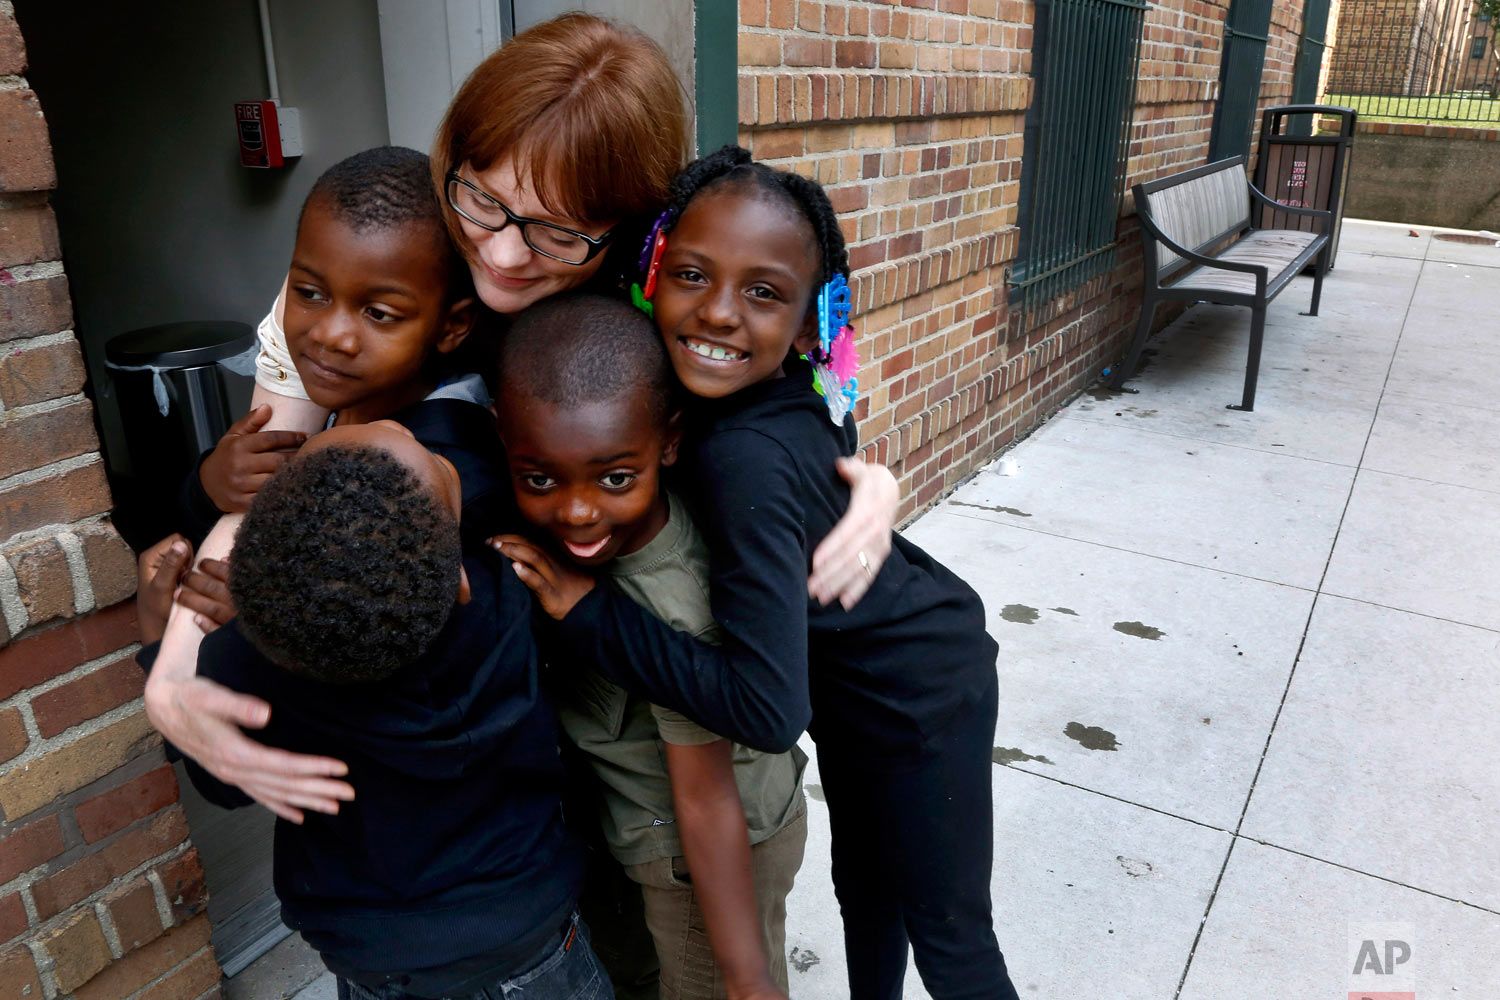 """In this June 25, 2018, photo, Charlie Branda, founder of Art on Sedgwick, hugs a few young residents of Marshall Field Garden Apartments in Chicago. Branda, whom many children call """"art teacher,"""" is a former commercial banker who left the profession to raise her two children, now teens. Though she doesn't consider herself an artist, she later opened a neighborhood art studio called Art on Sedgwick to try to unite a neighborhood divided by income and race. (AP Photo/Martha Irvine)"""